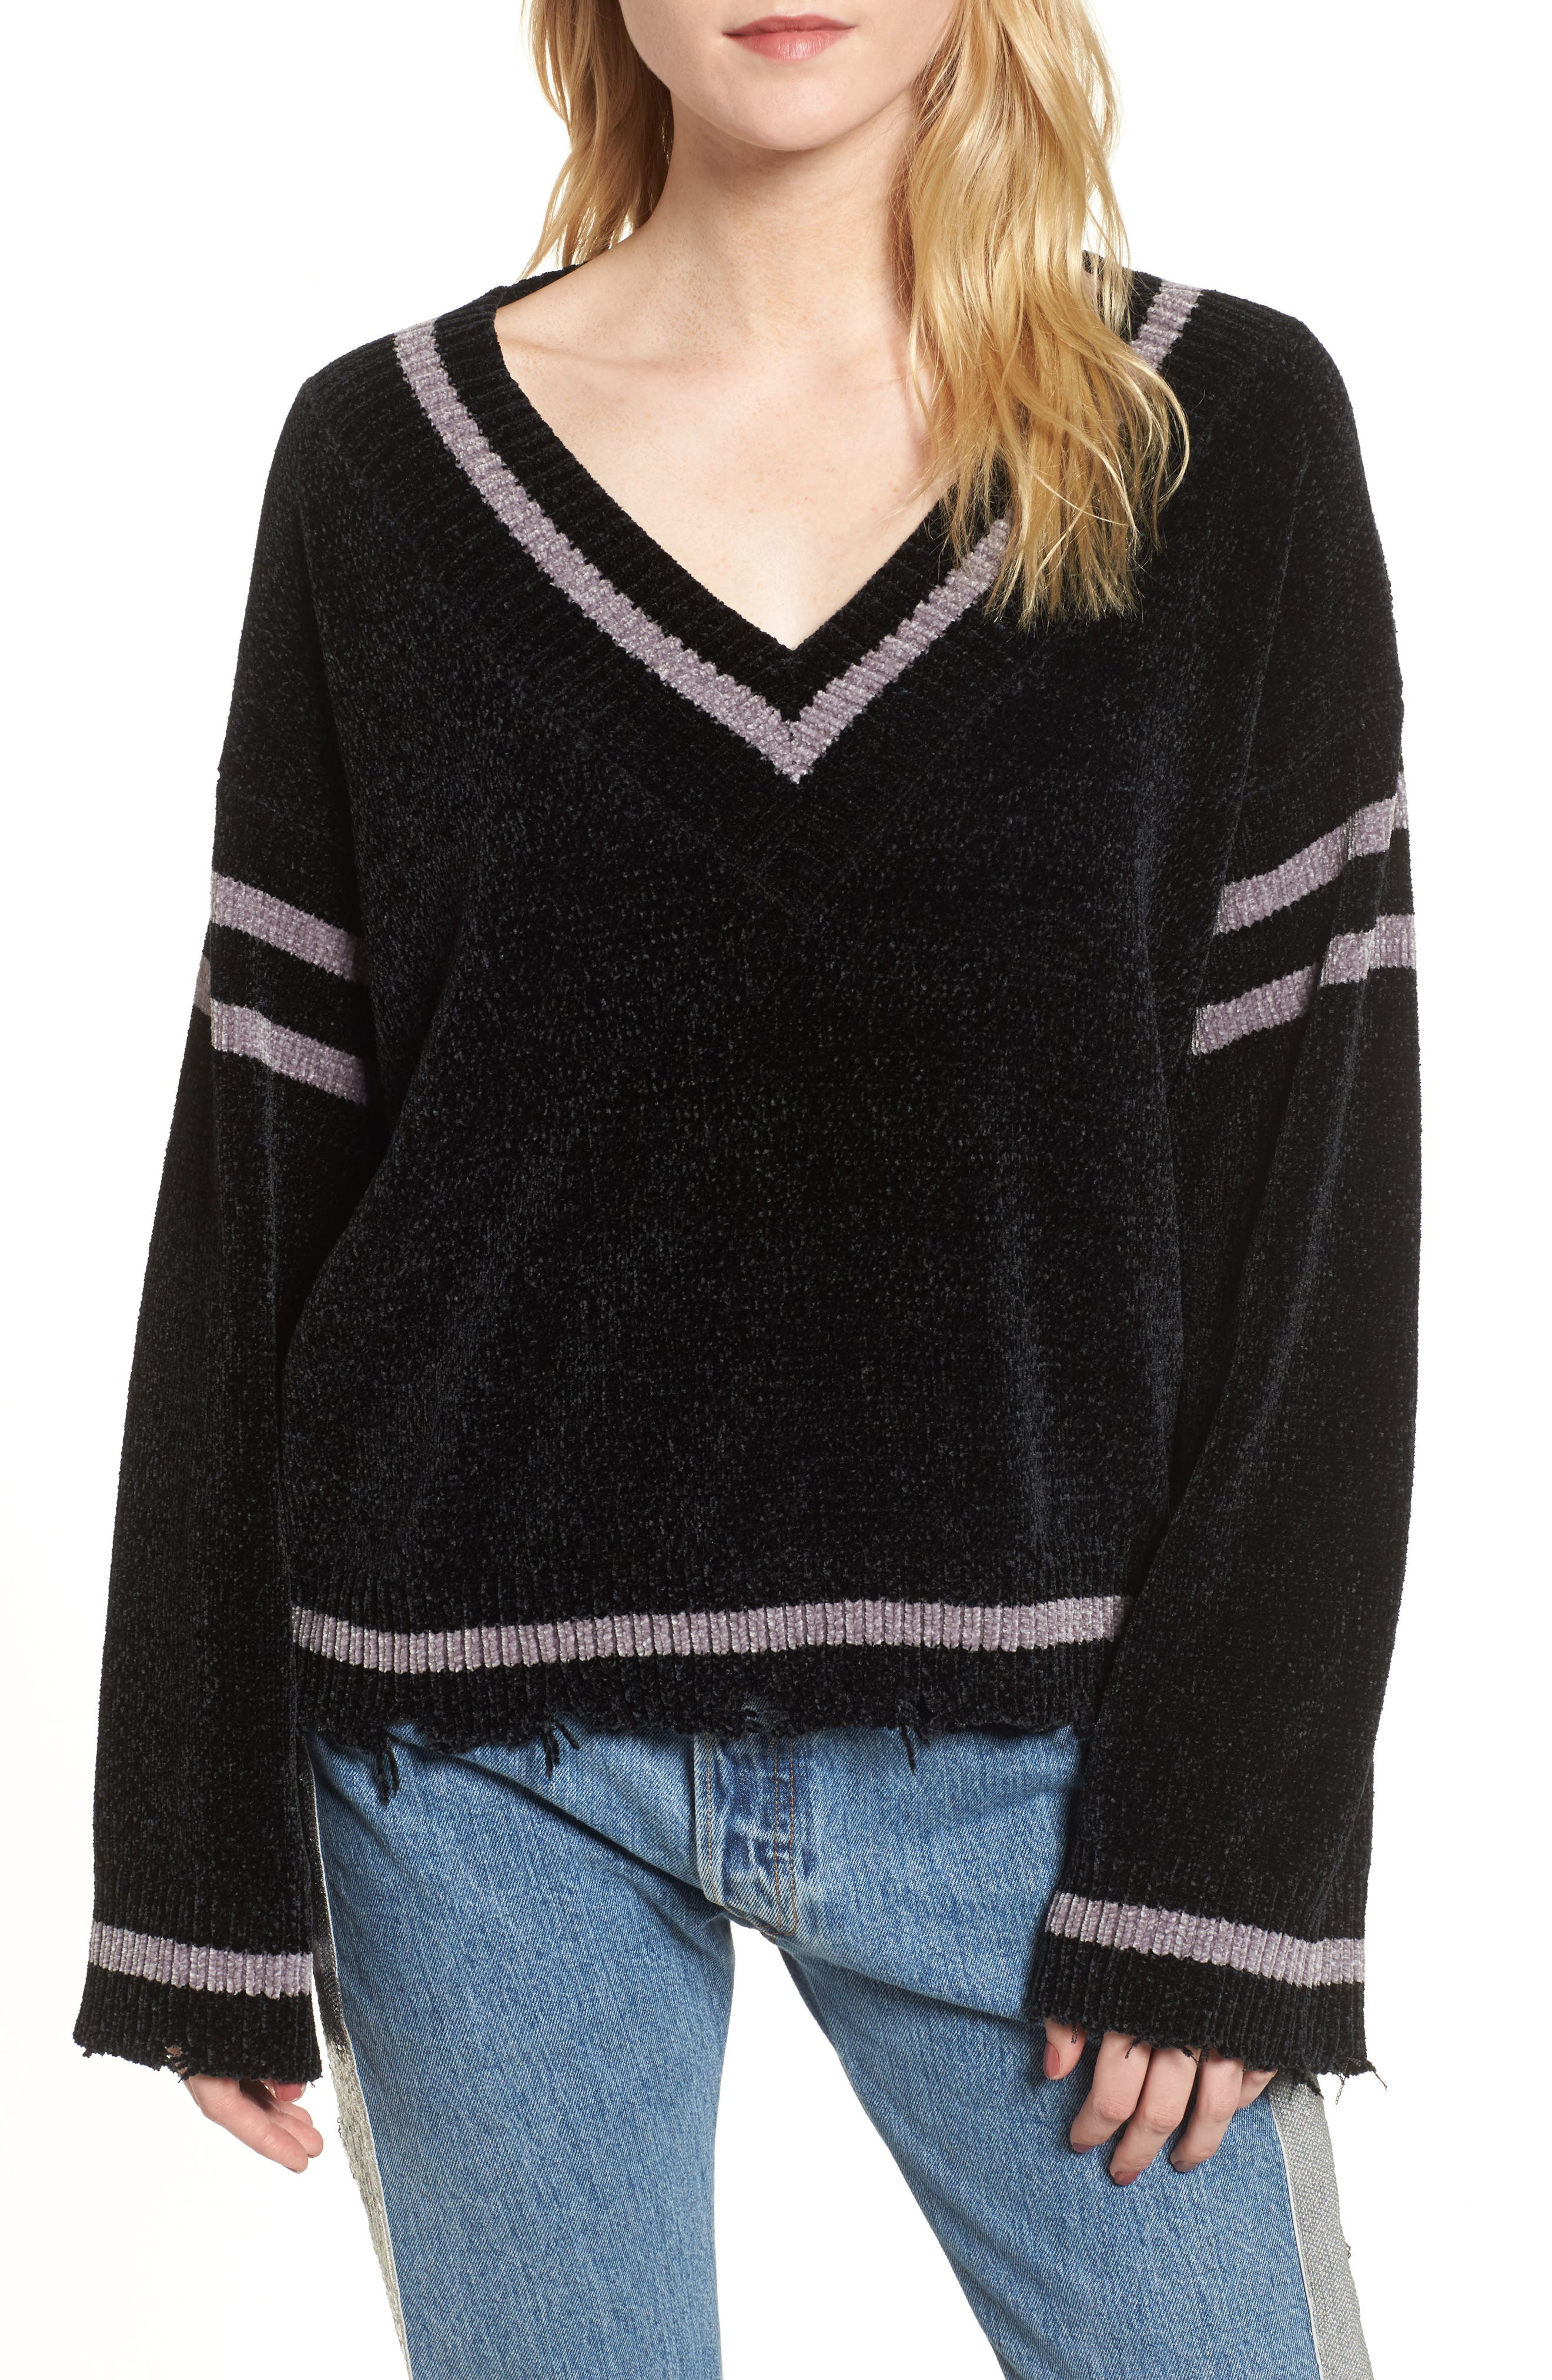 Main Image - KENDALL + KYLIE Oversize V-Neck Sweater